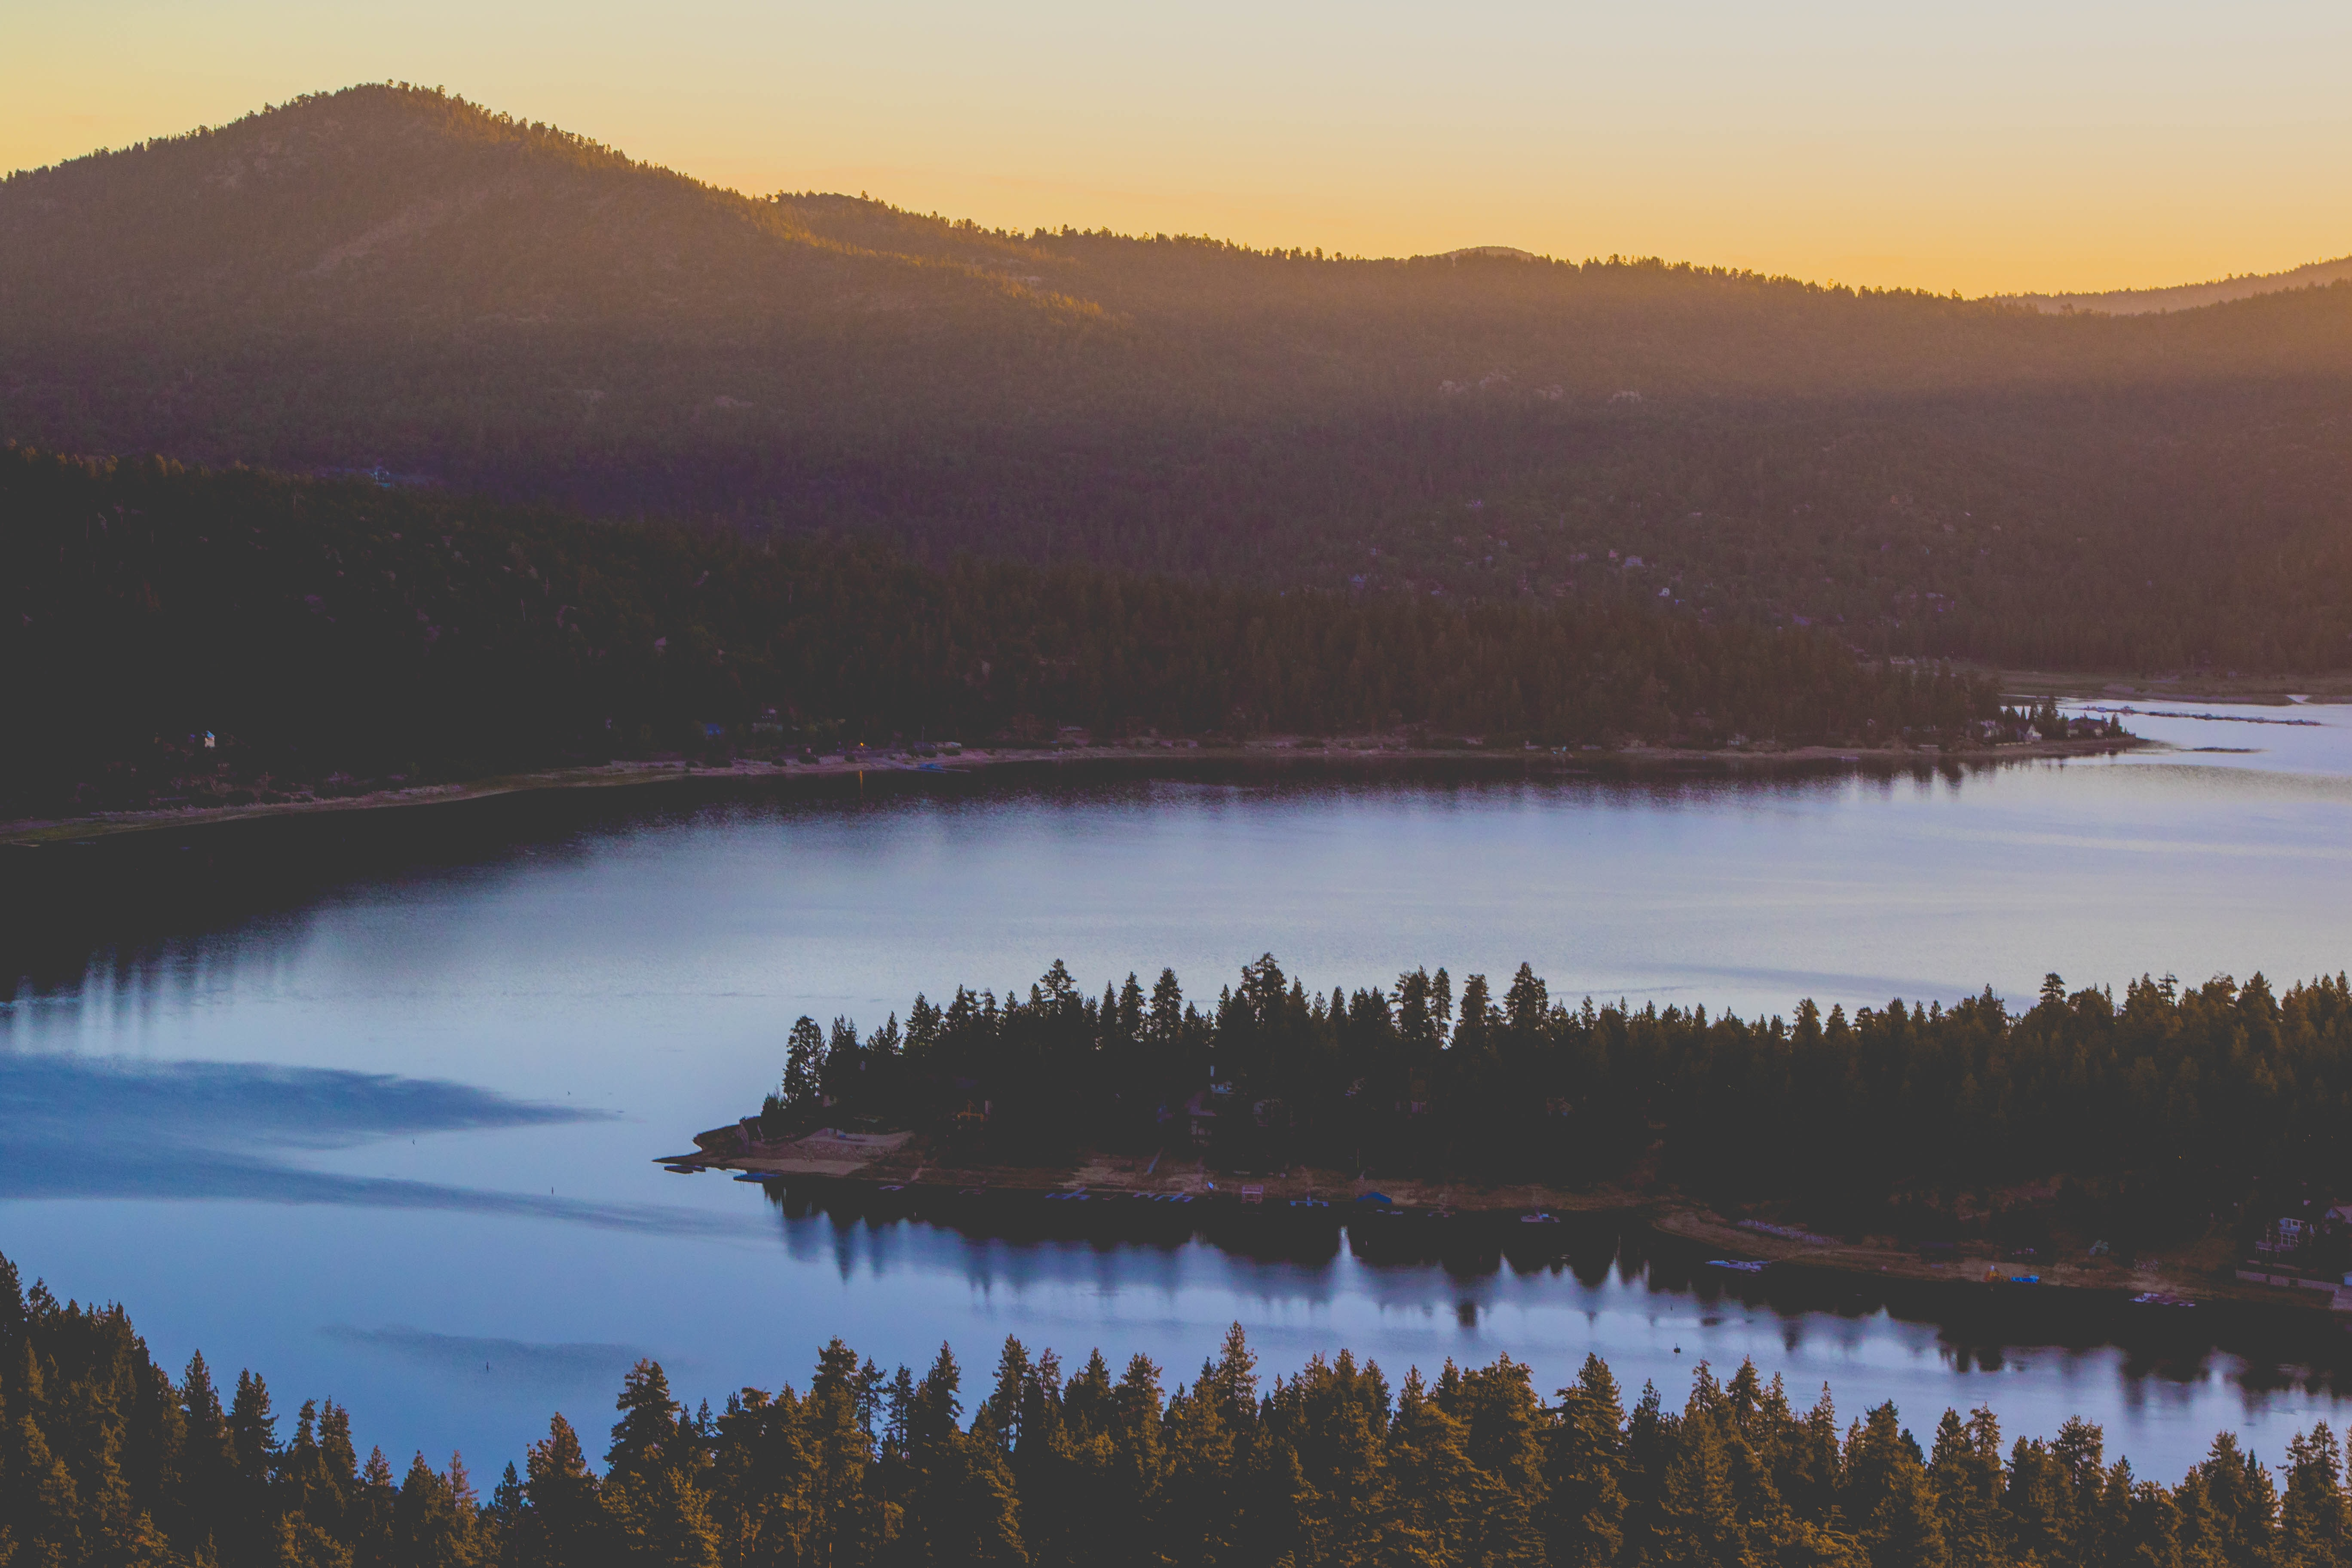 A view of the lake and tree covered land and hillsides at Big Bear Lake during the golden hour